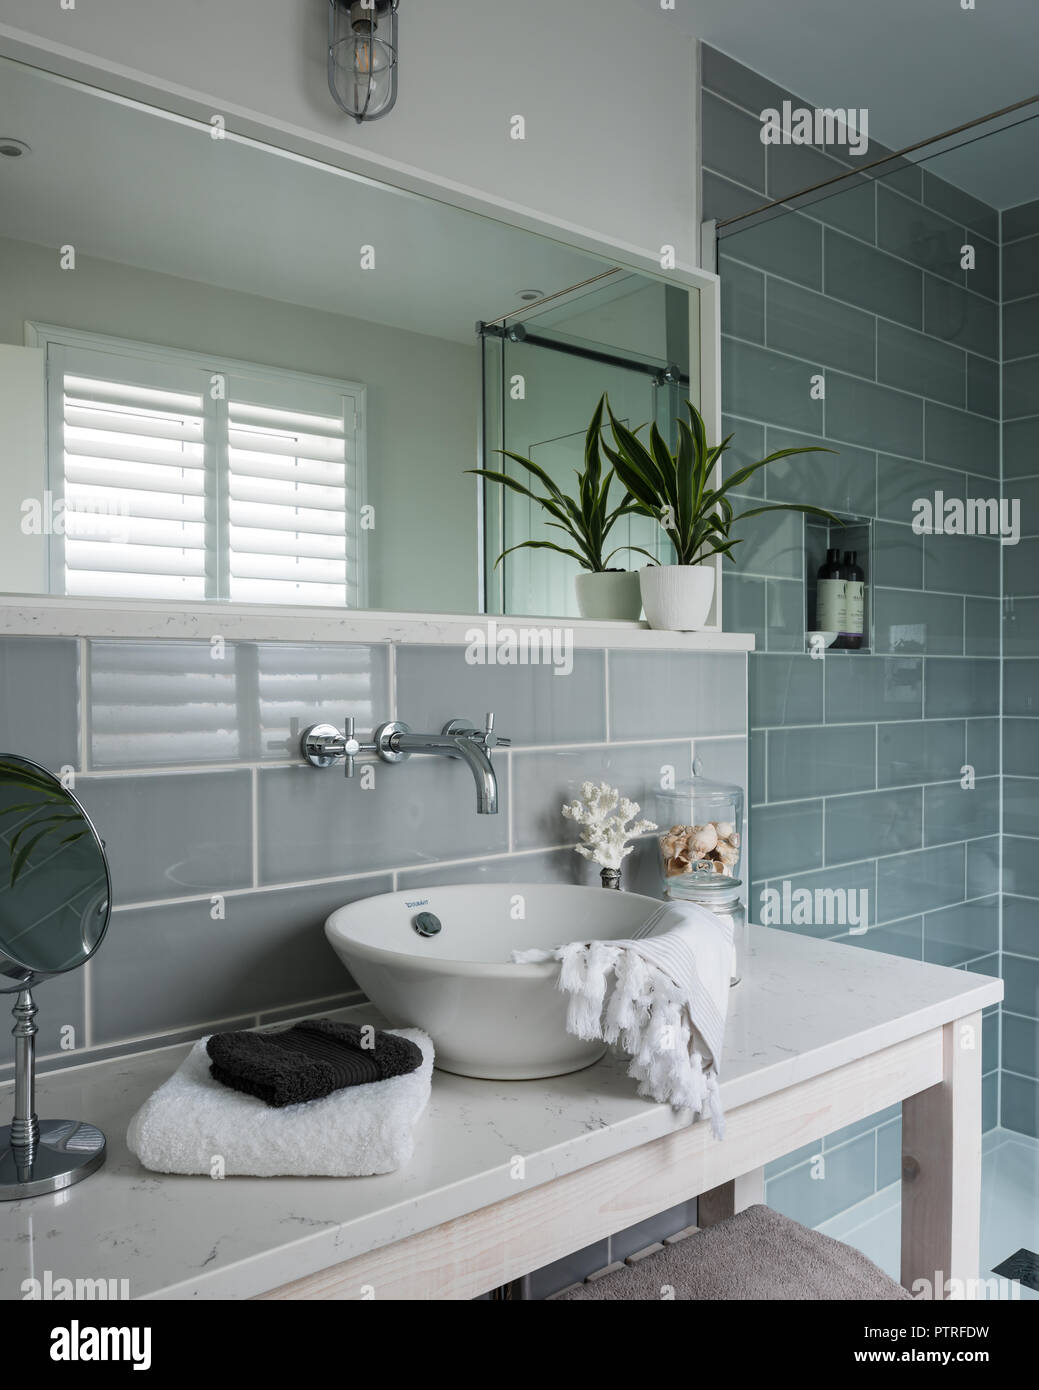 Tiles Above Sink Stock Photos Tiles Above Sink Stock Images Alamy